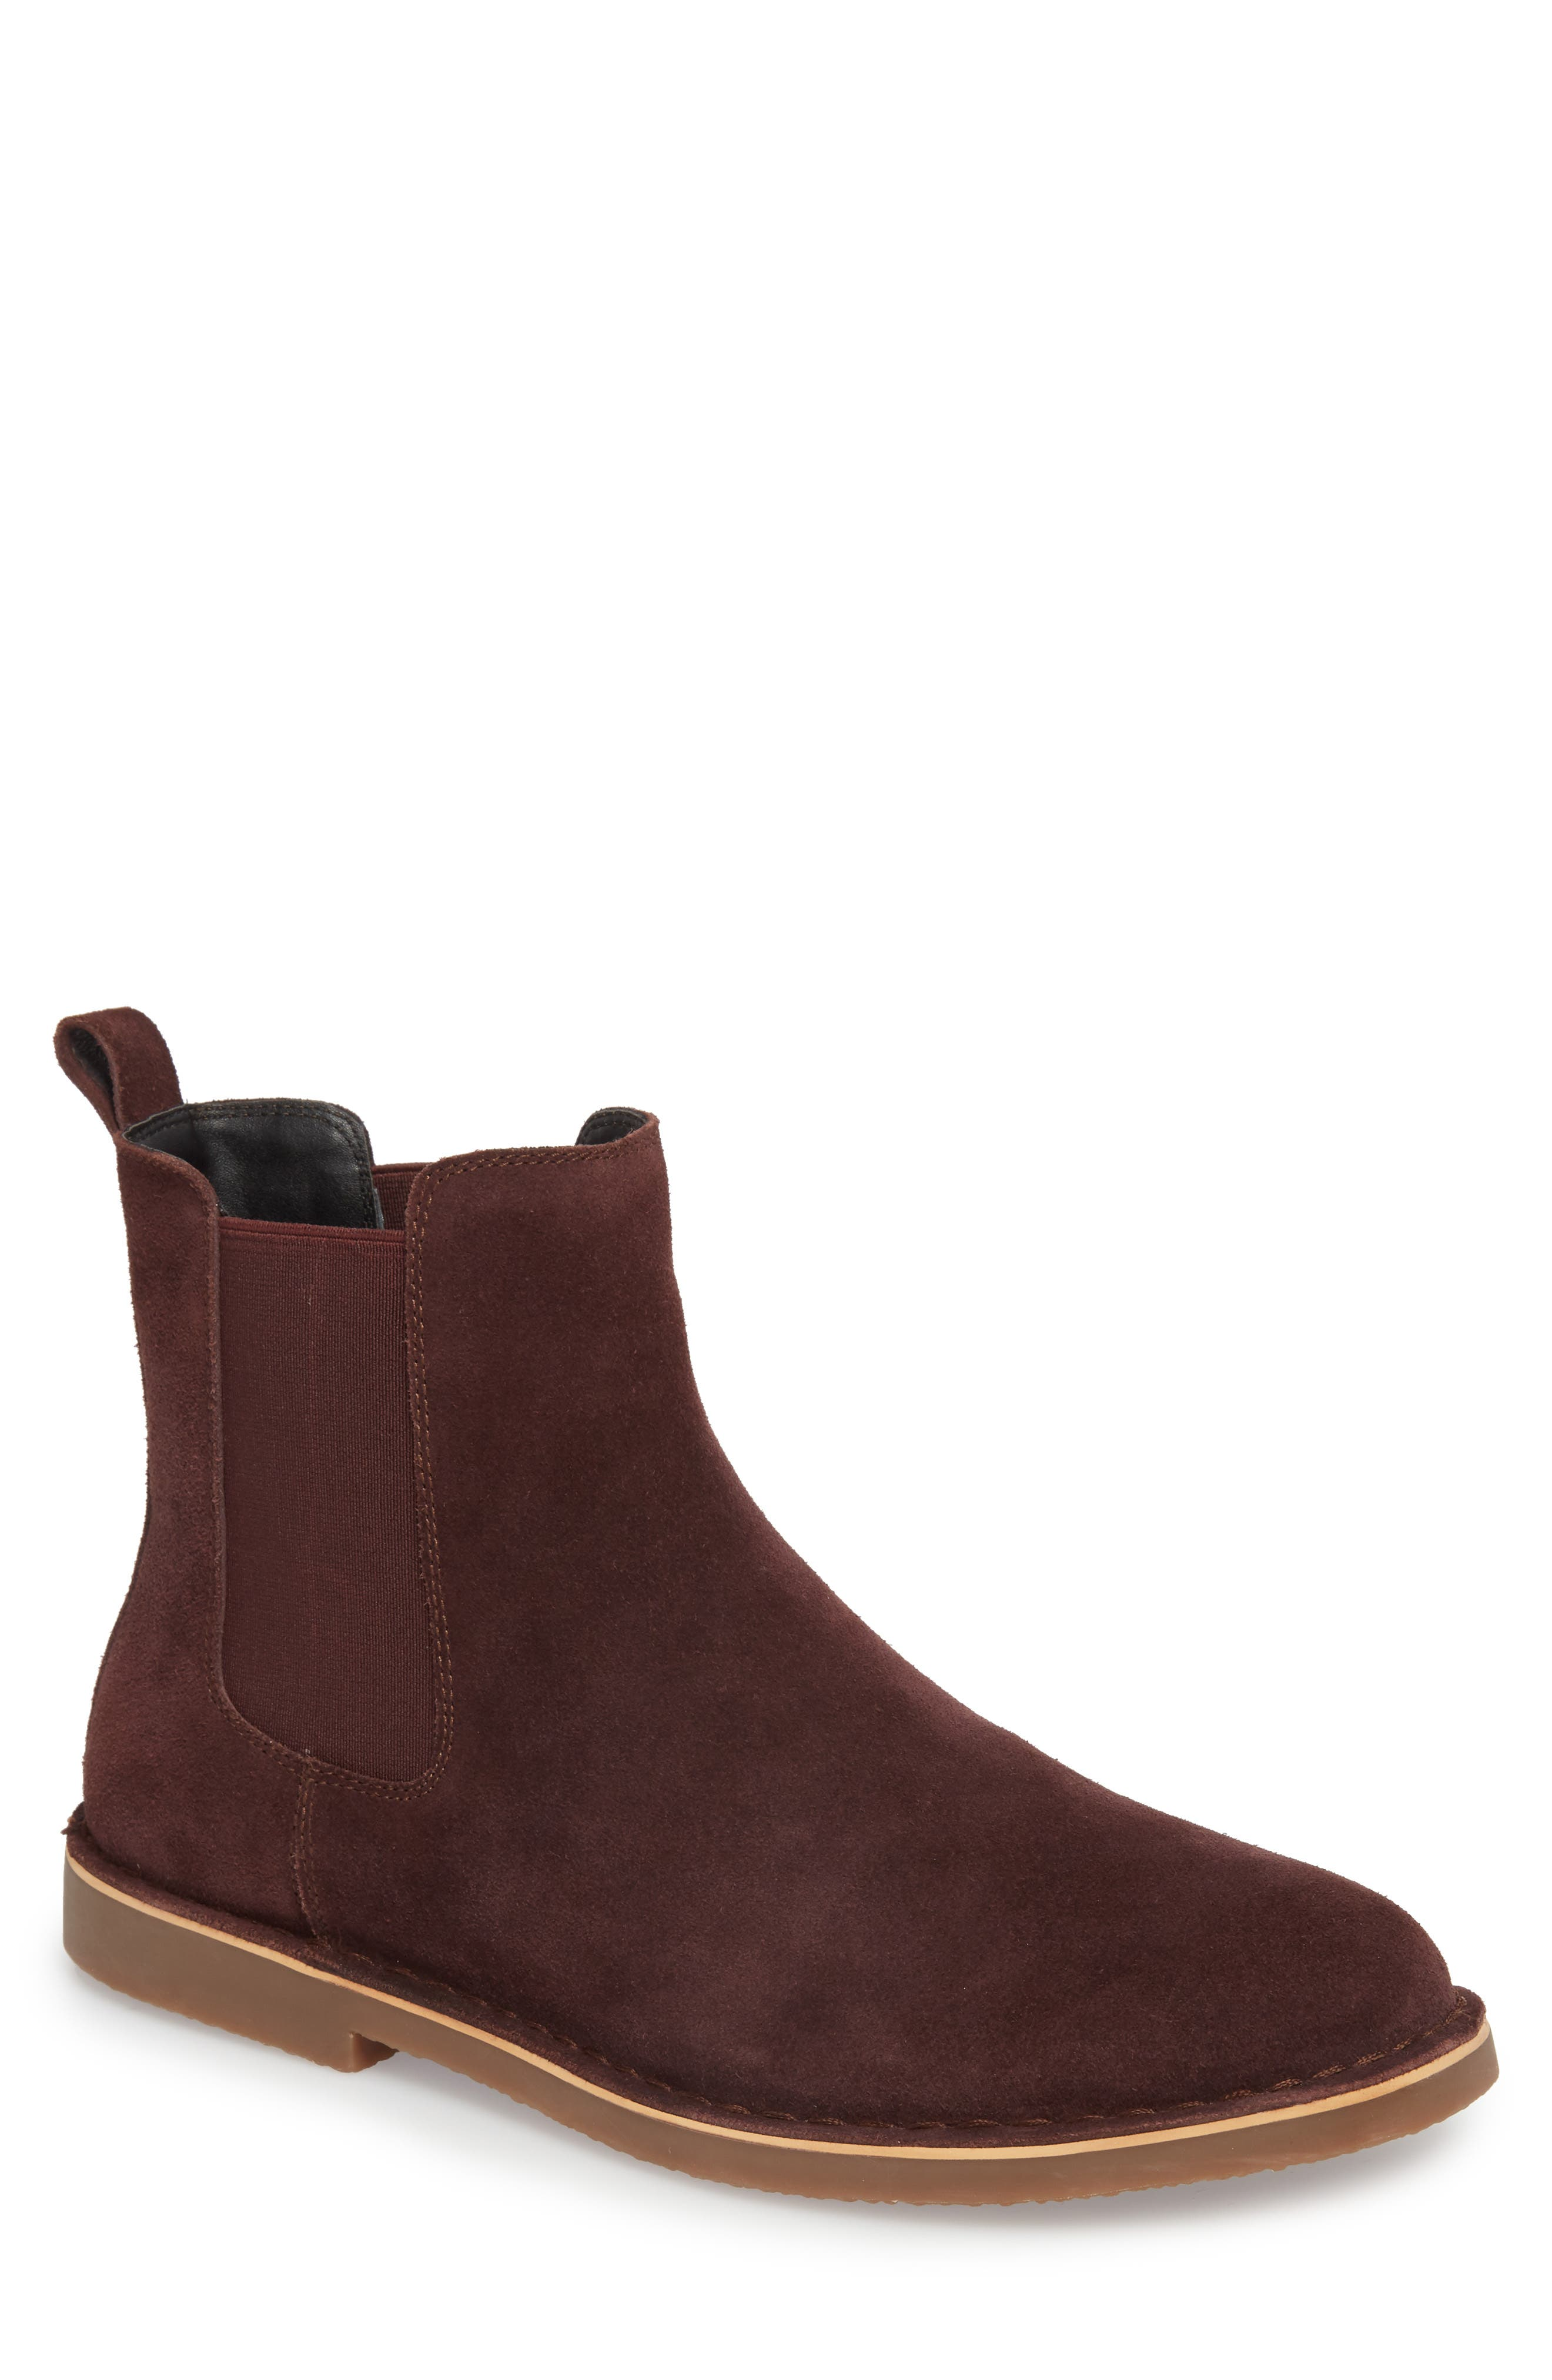 Mesa Chelsea Boot,                             Main thumbnail 1, color,                             BURGUNDY SUEDE